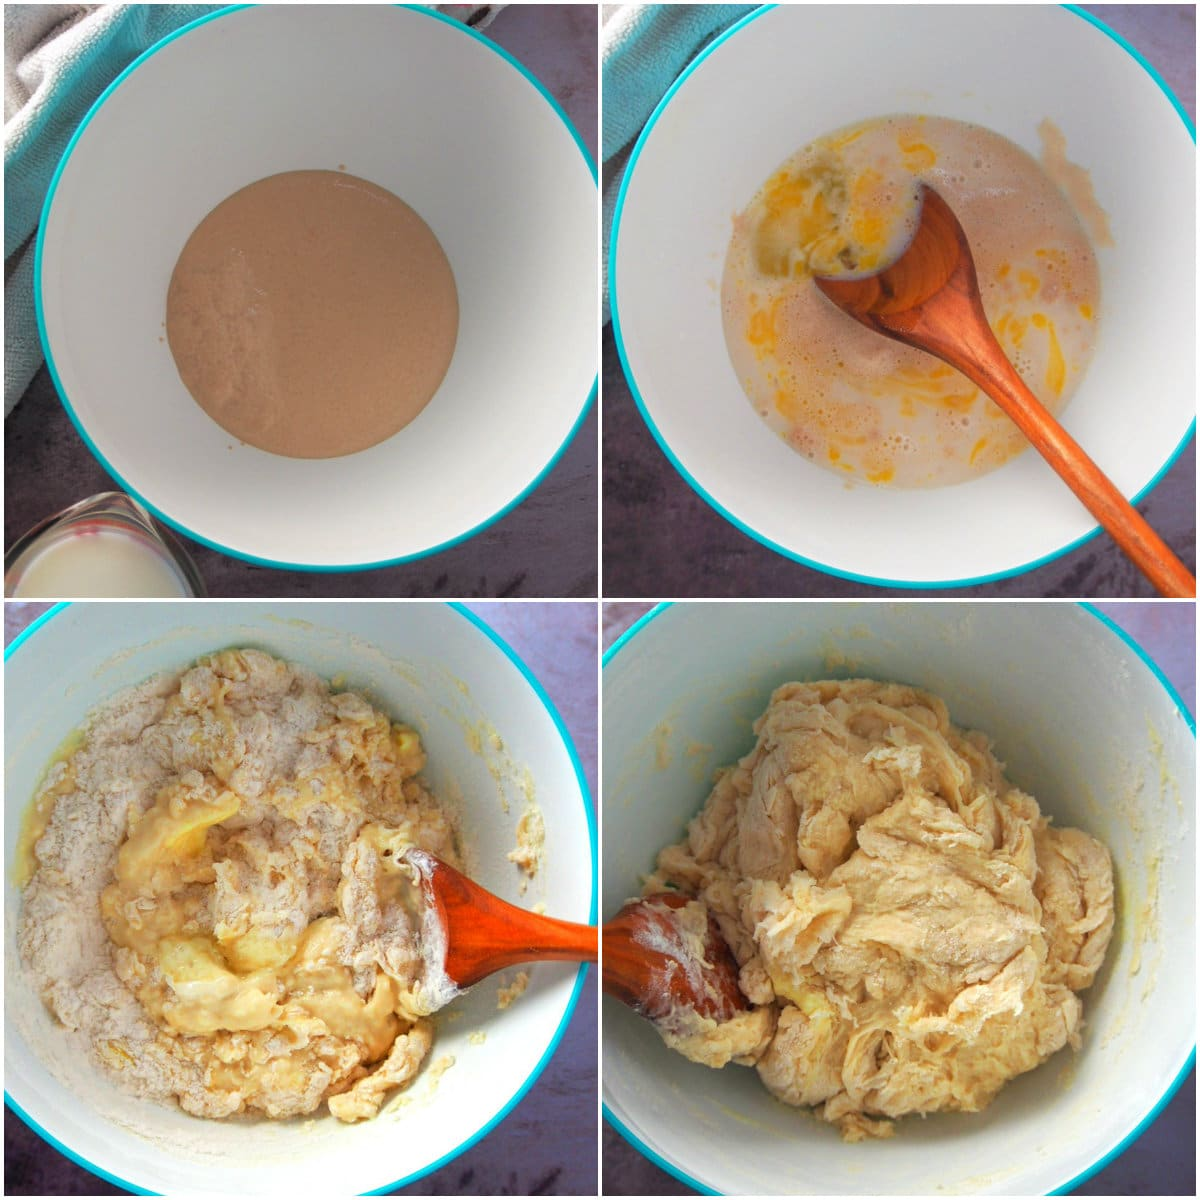 A photo collage showing how to make the bread dough for dulce de leche buns.